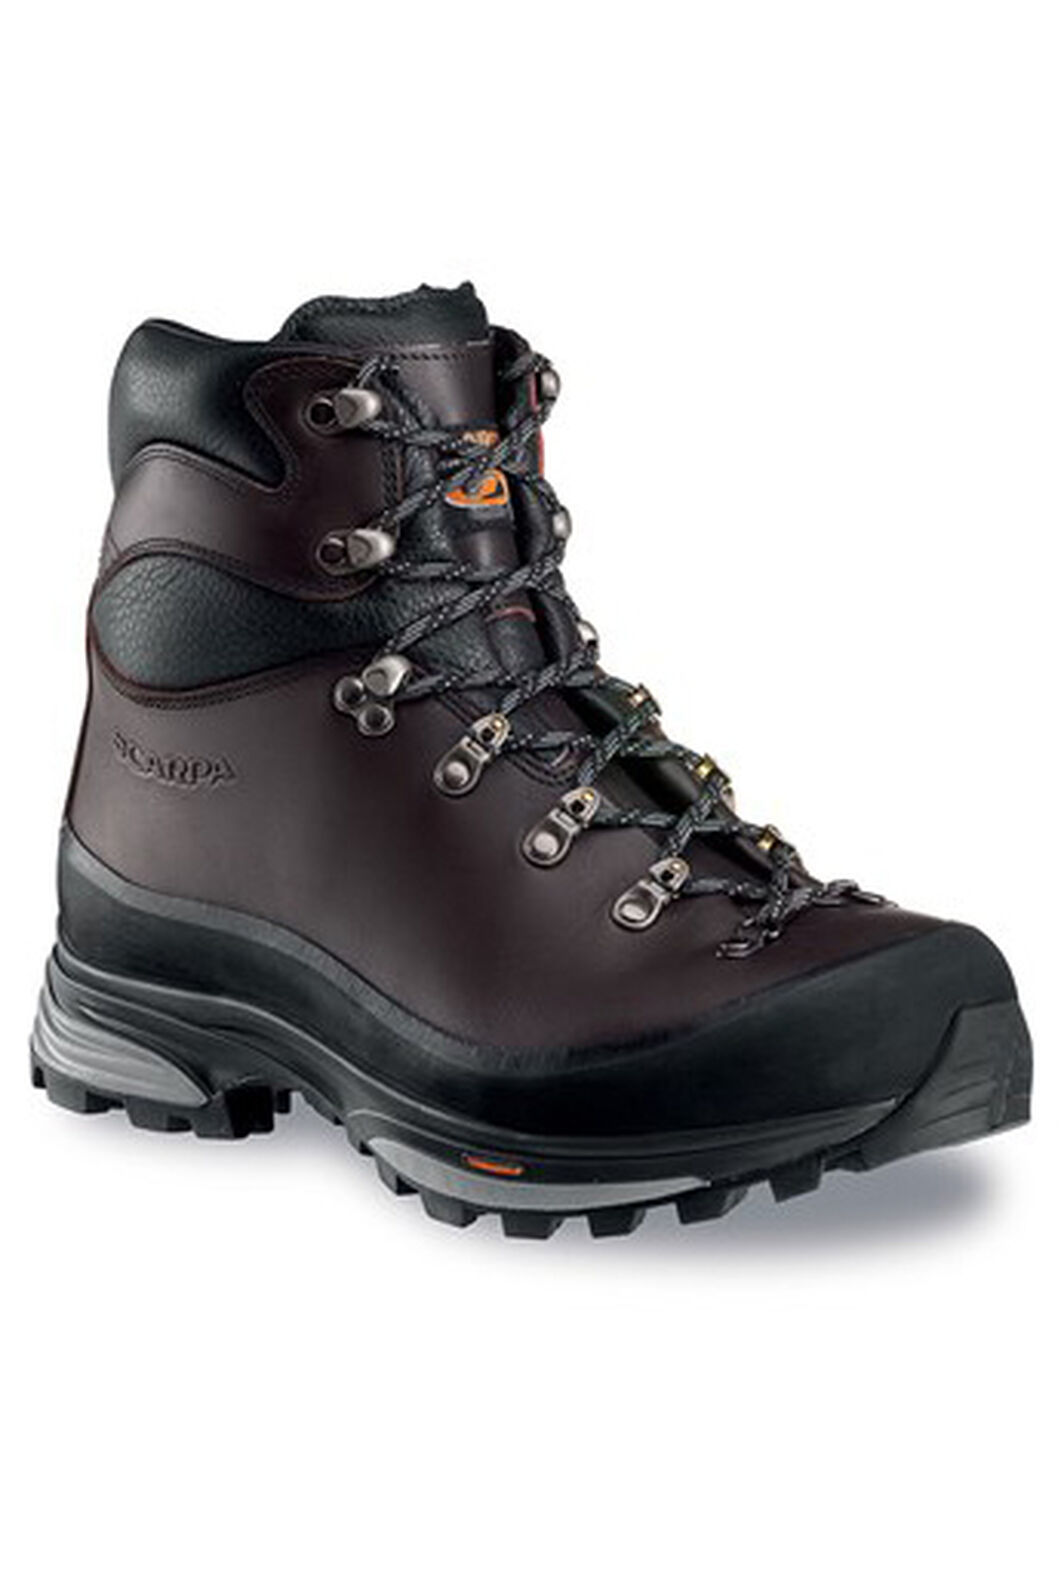 Scarpa SL Active Fit Boots - Men's, Bordo, hi-res